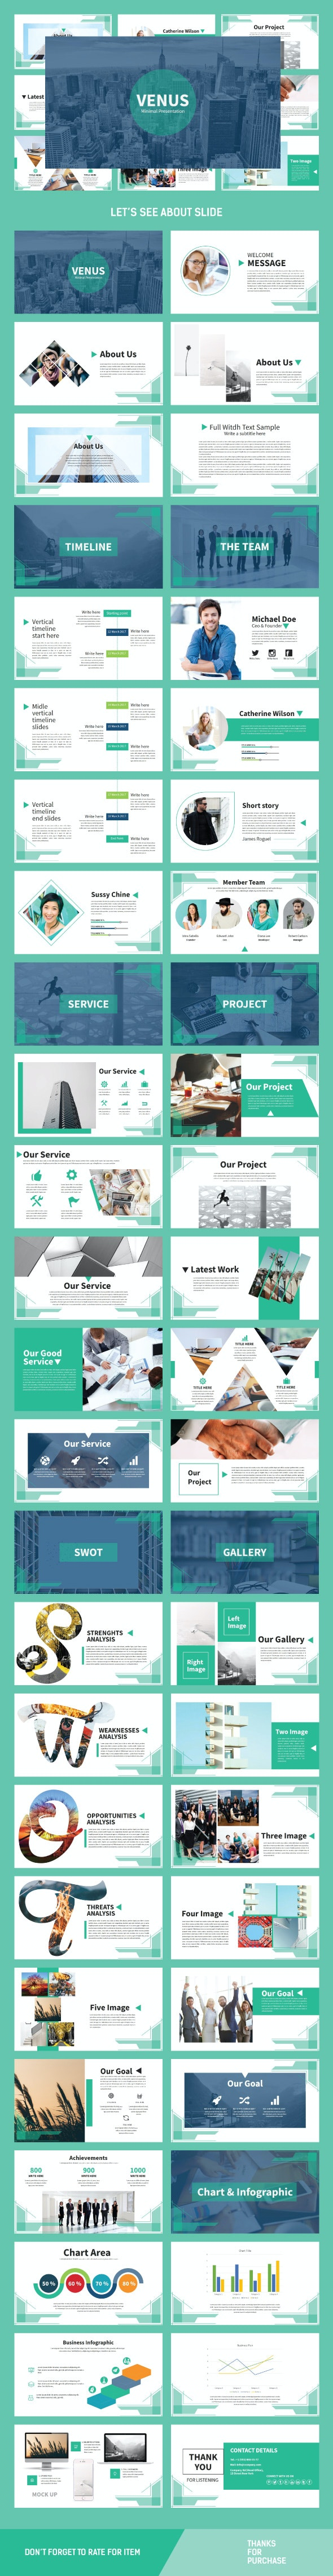 Venus keynote Template - Business Keynote Templates